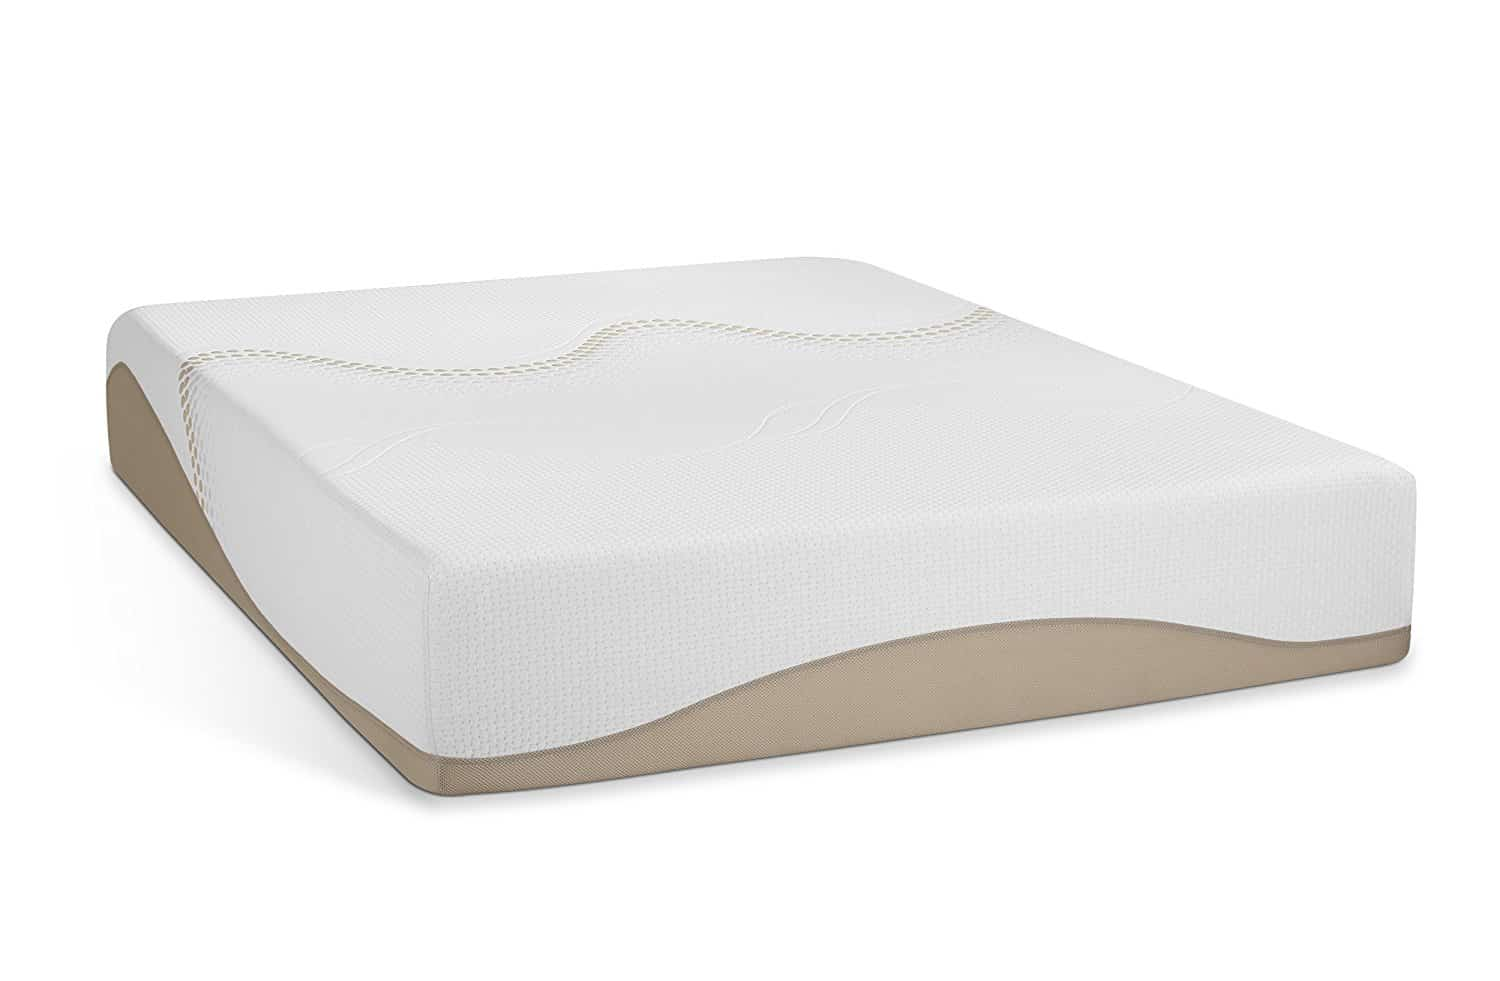 "Amerisleep Liberty 12"" Natural Memory Foam Mattress"